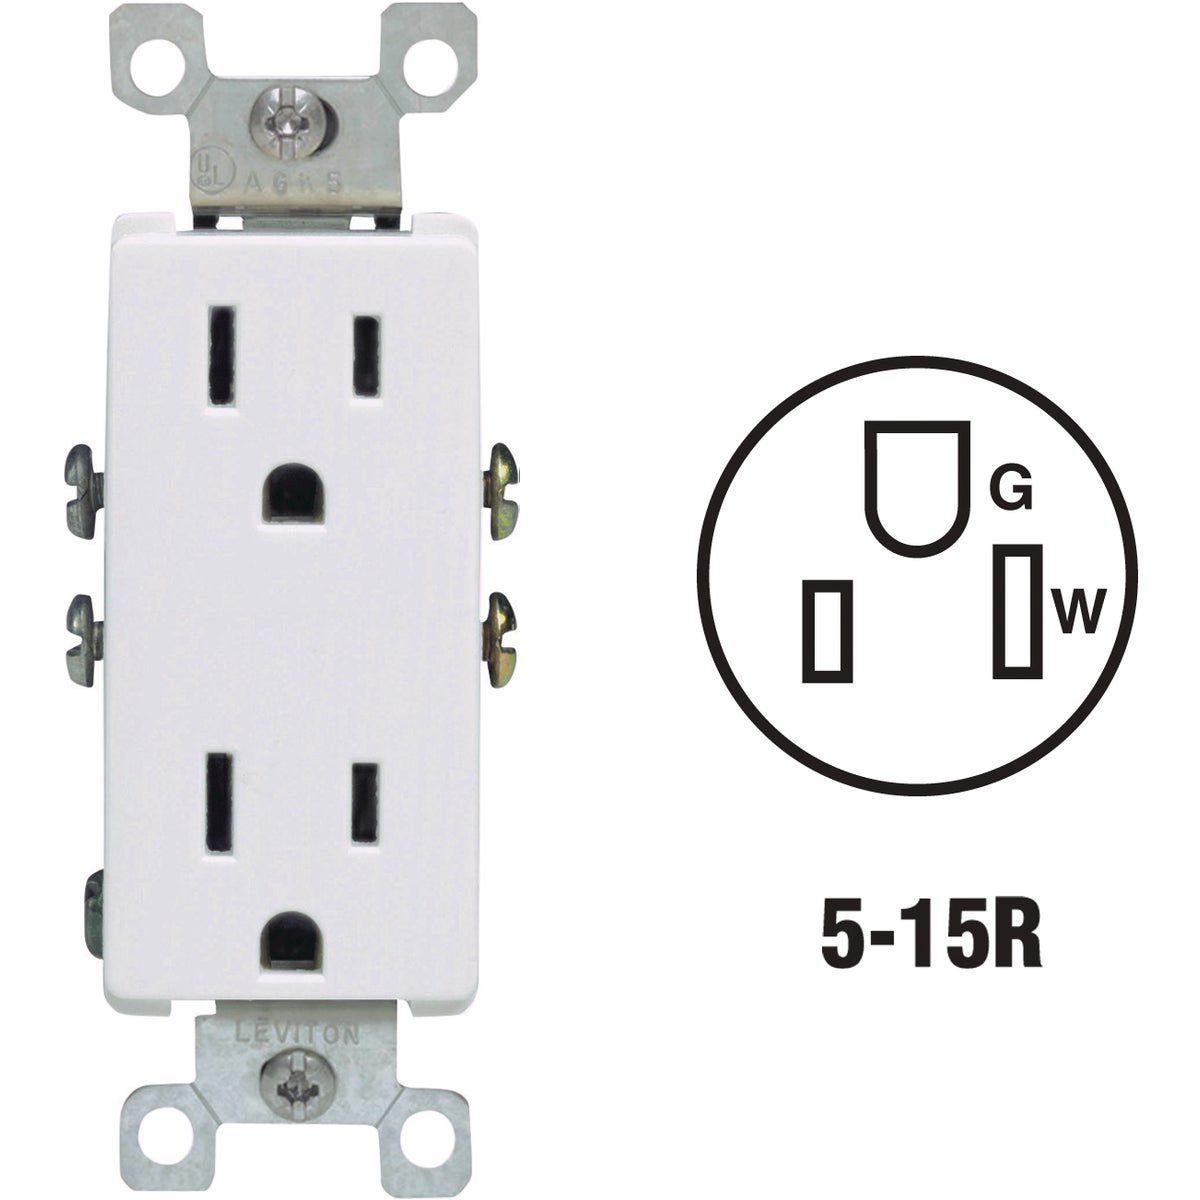 WHITE DUPLEX OUTLET - S02-05325-OWS by Leviton Mfg Co